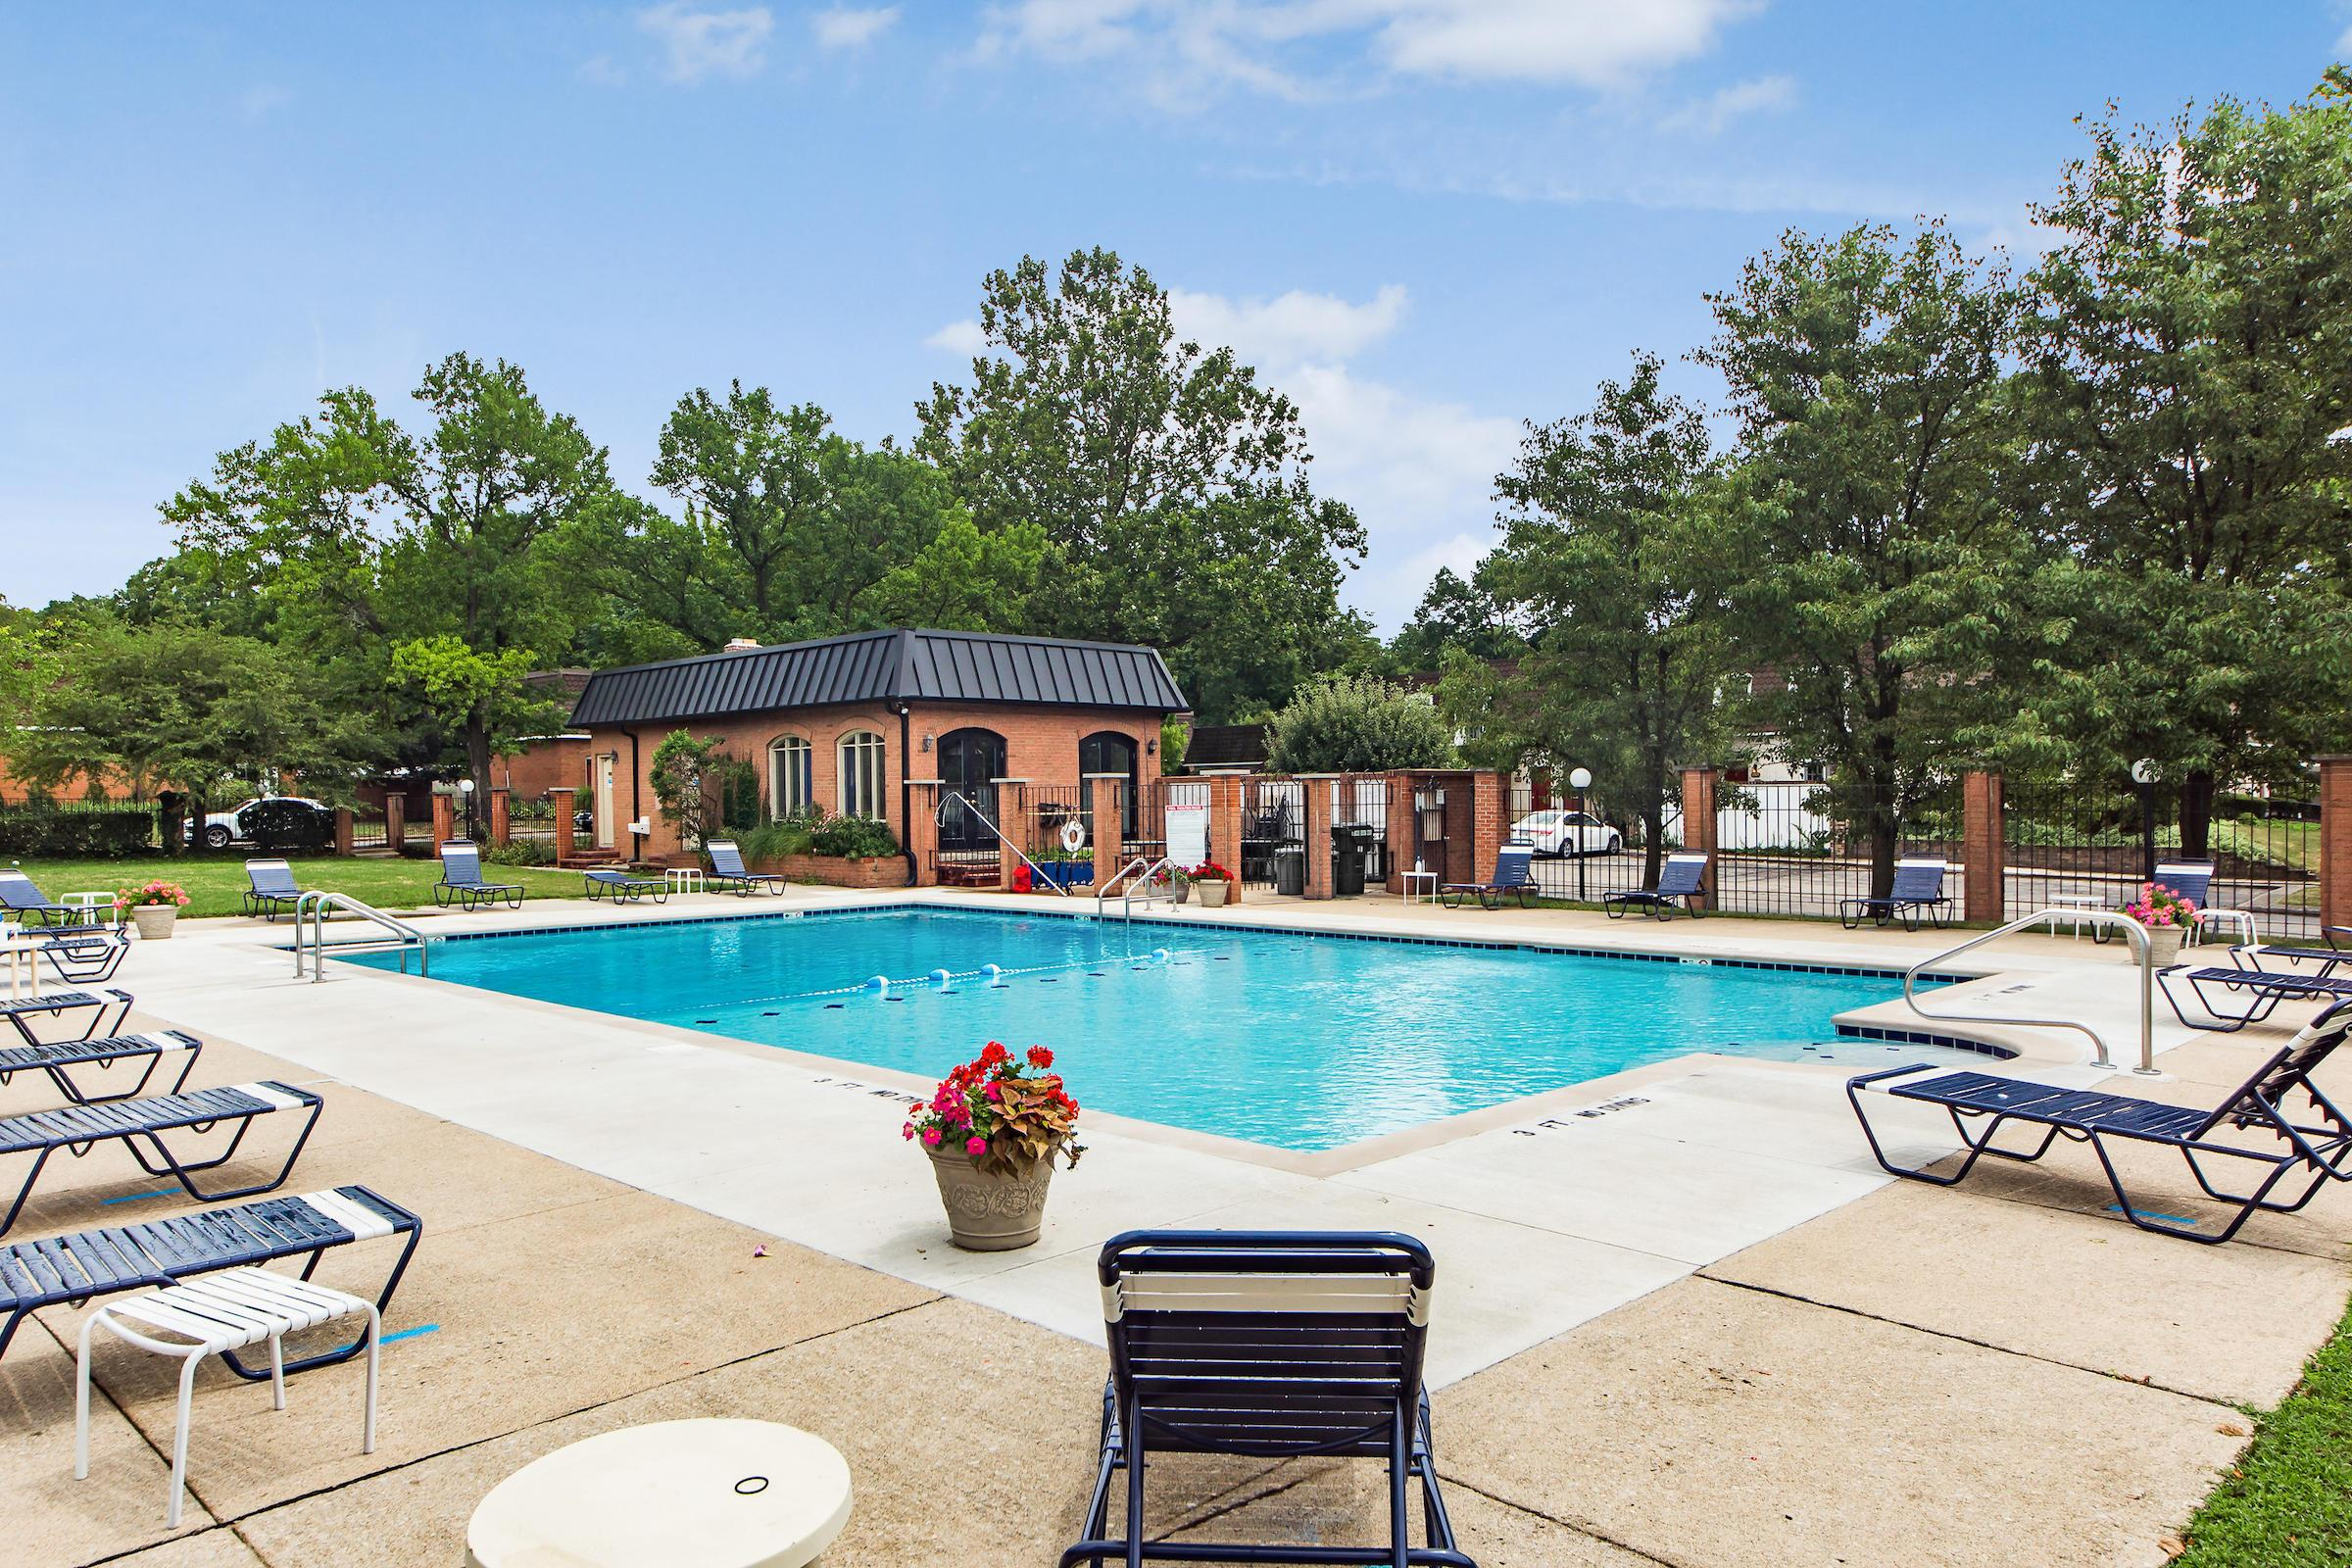 2786 Chateau Circle, Upper Arlington, Ohio 43221, 2 Bedrooms Bedrooms, ,2 BathroomsBathrooms,Residential,For Sale,Chateau,220024604